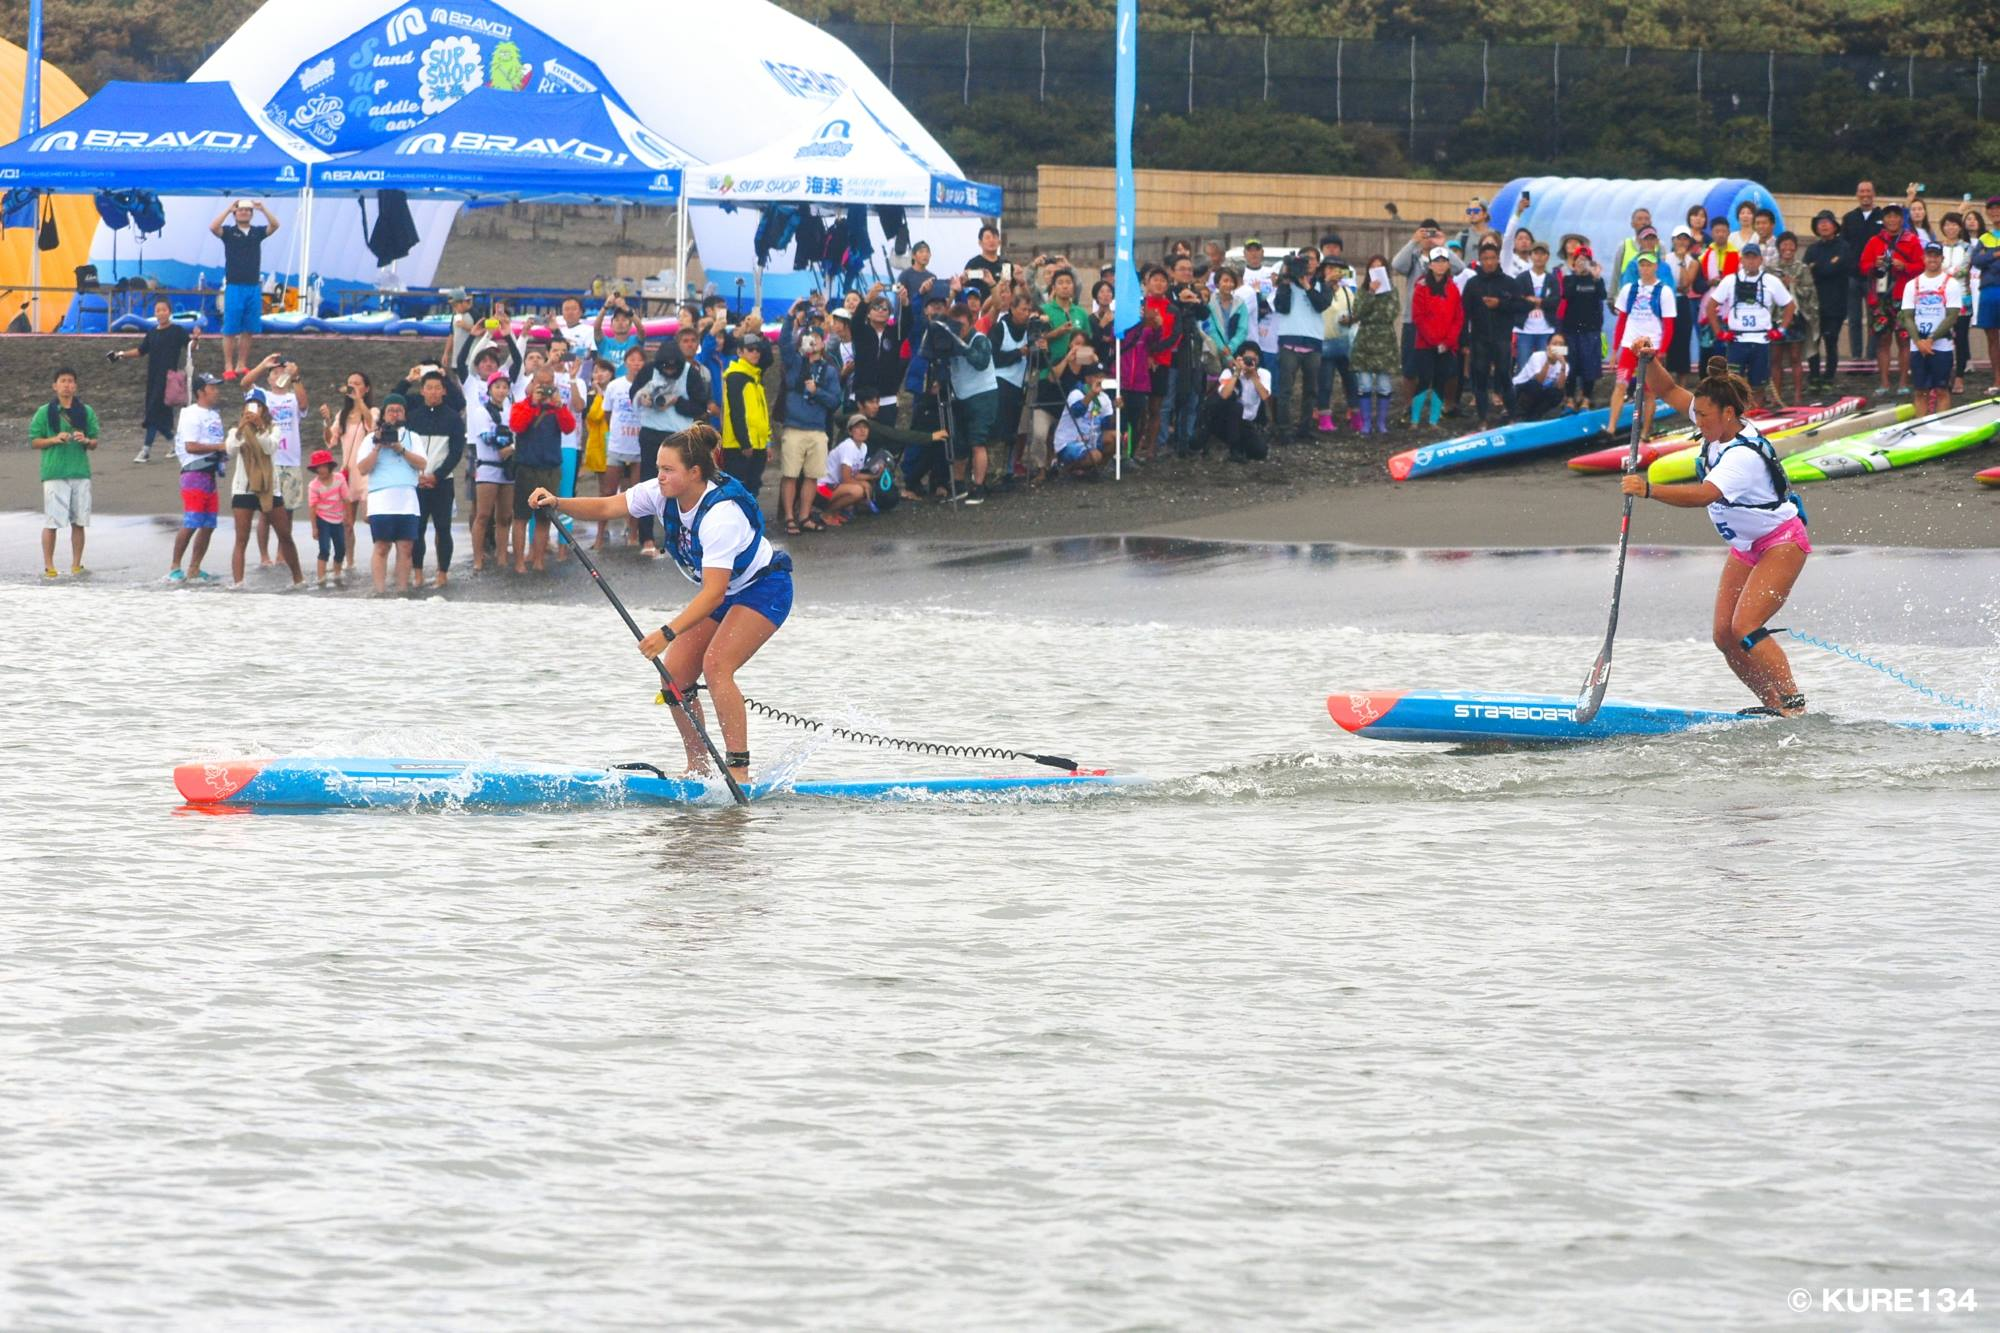 The-Paddle-League-SUP-Japan-Cup-Saturday-10K-race-@kure134-3